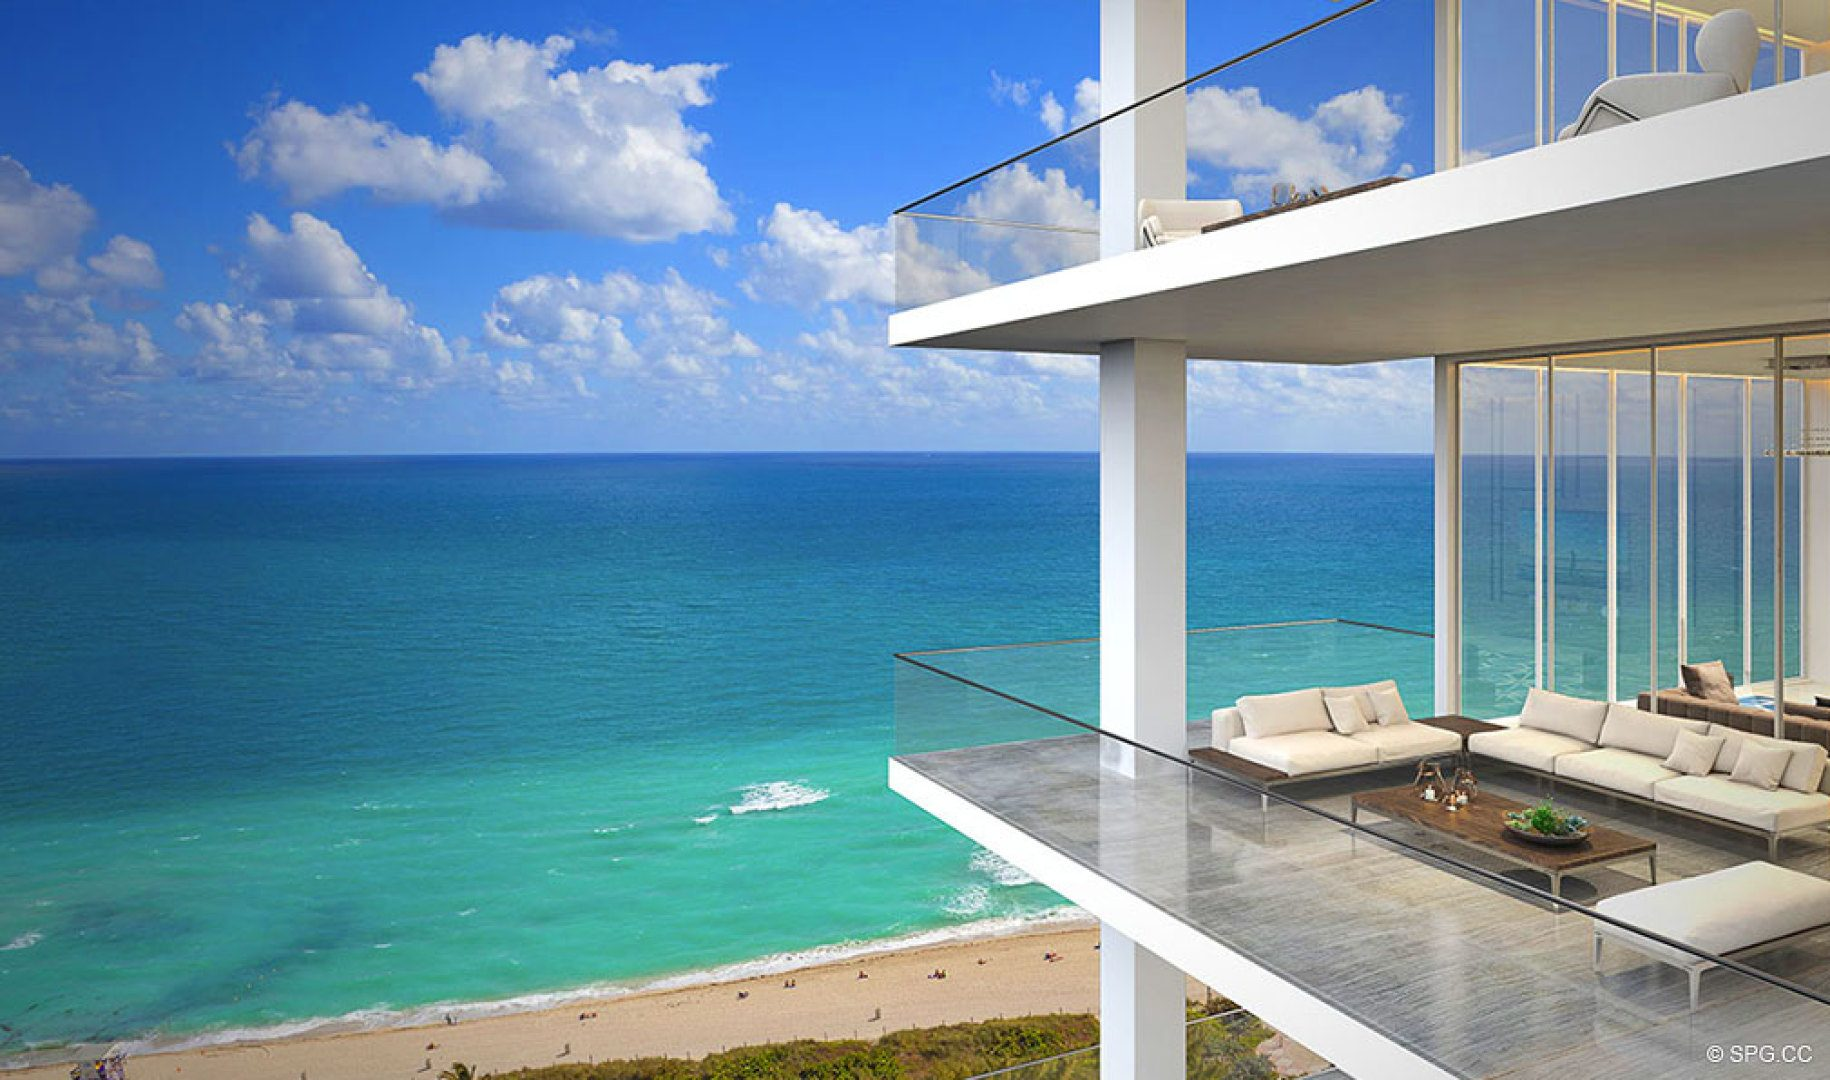 Direct Ocean Views from 5000 North Ocean, Luxury Oceanfront Condos in Riviera Beach